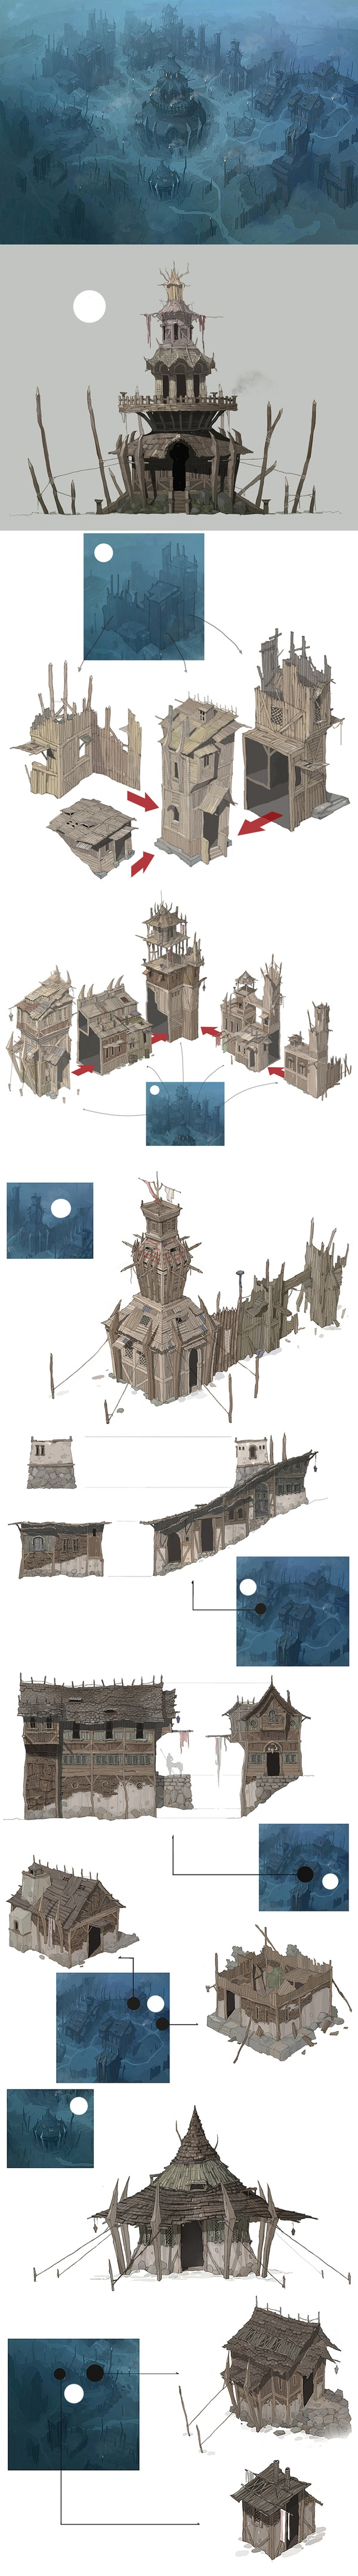 Fallout 4 Character Design Ideas : Images about fallout settlement building ideas